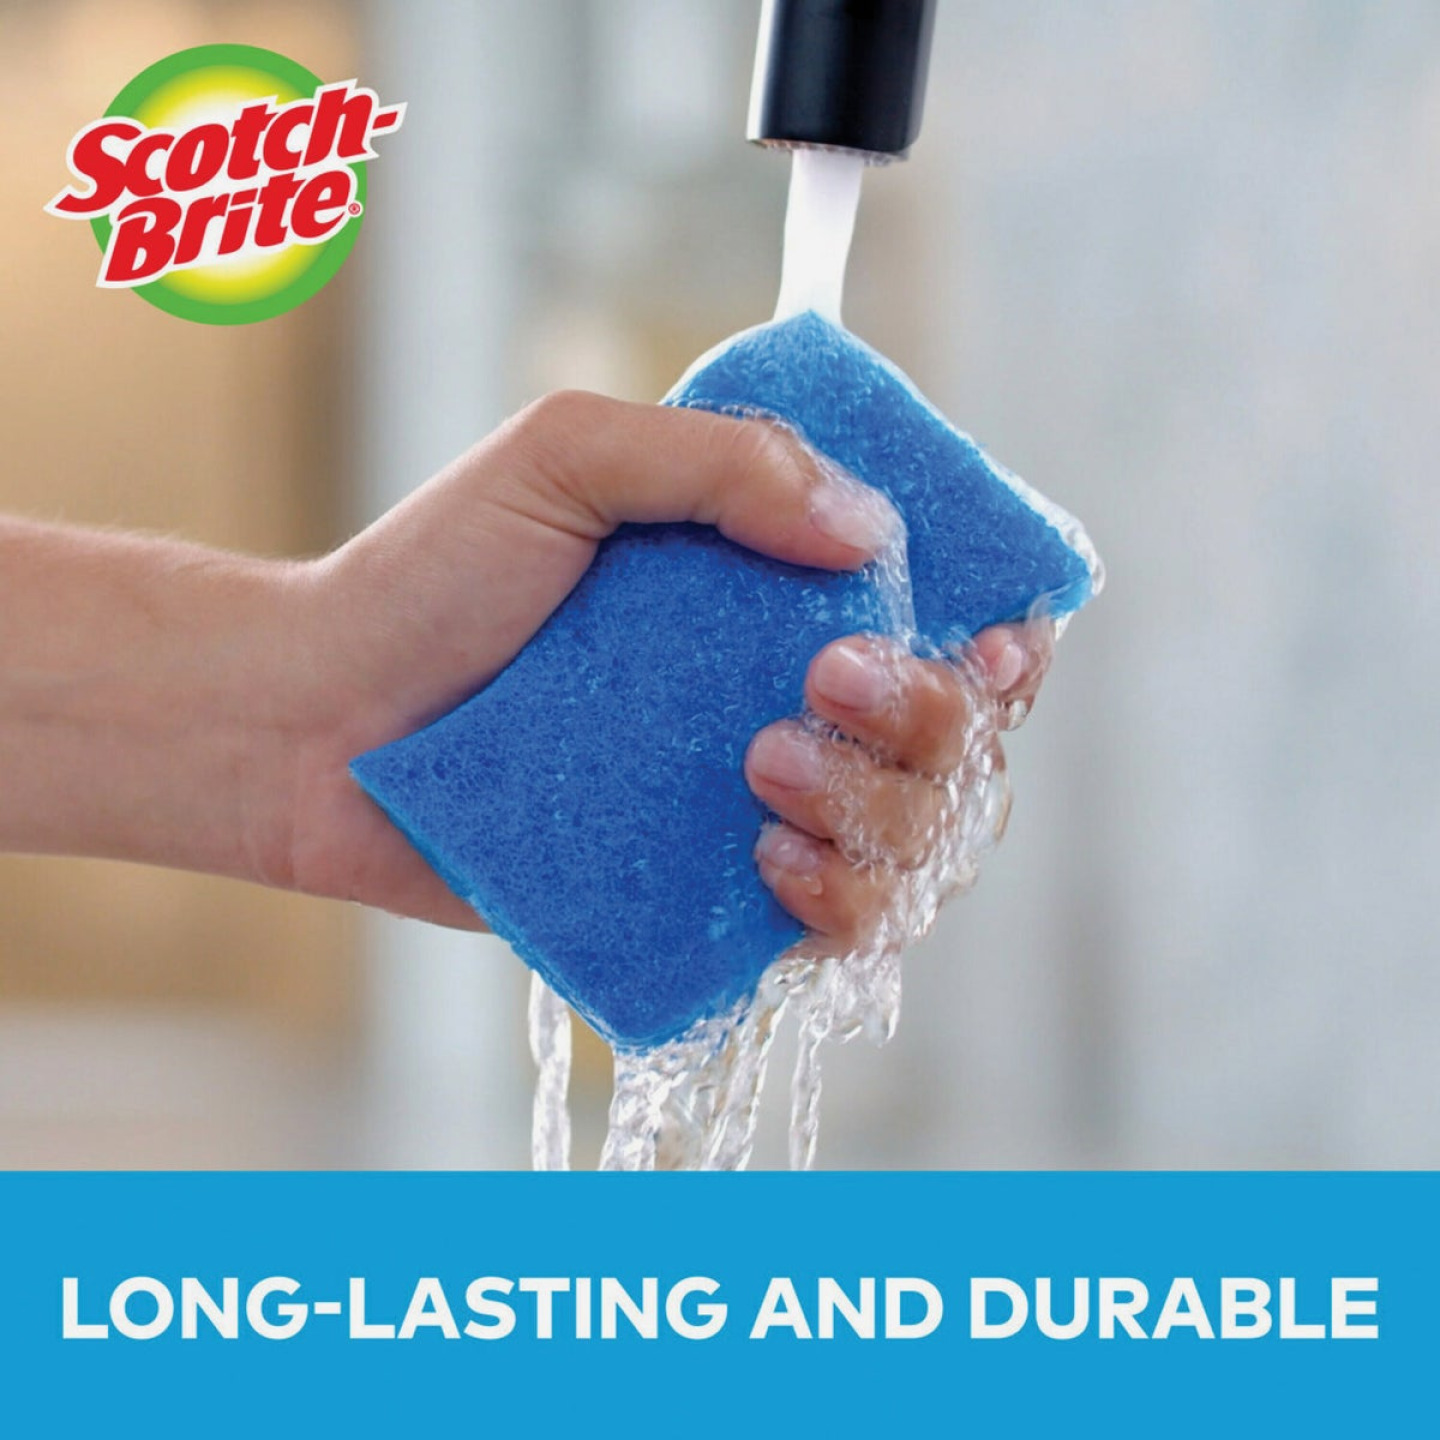 3M Scotch-Brite 4.4 In. x 2.6 In. Blue Scratch Free Scrub Sponge (3-Count) Image 3